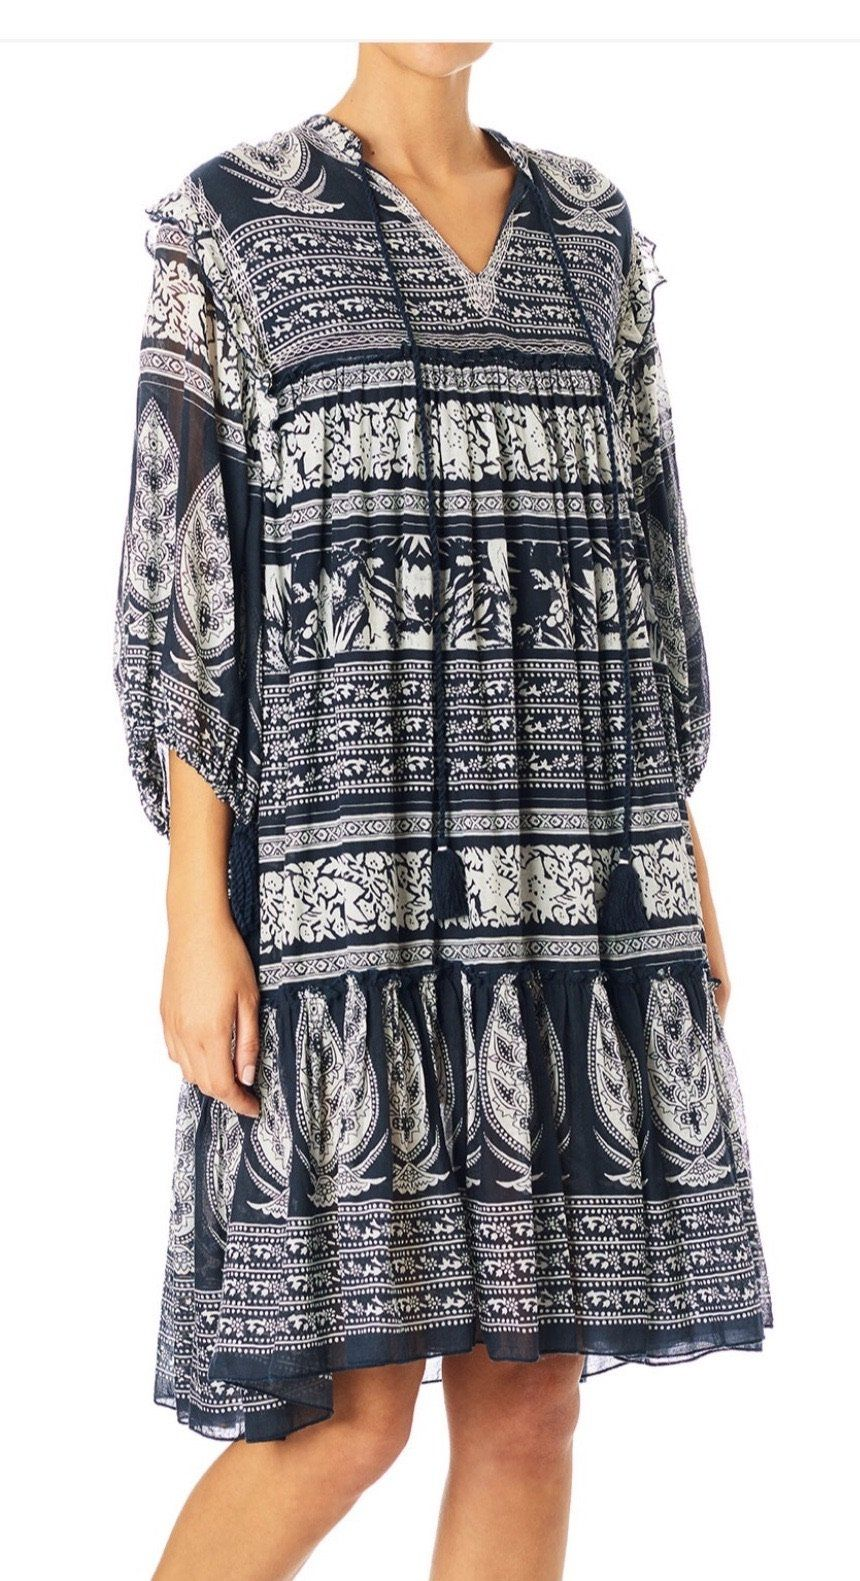 M.A.B.E Athena Print Dress in Navy S